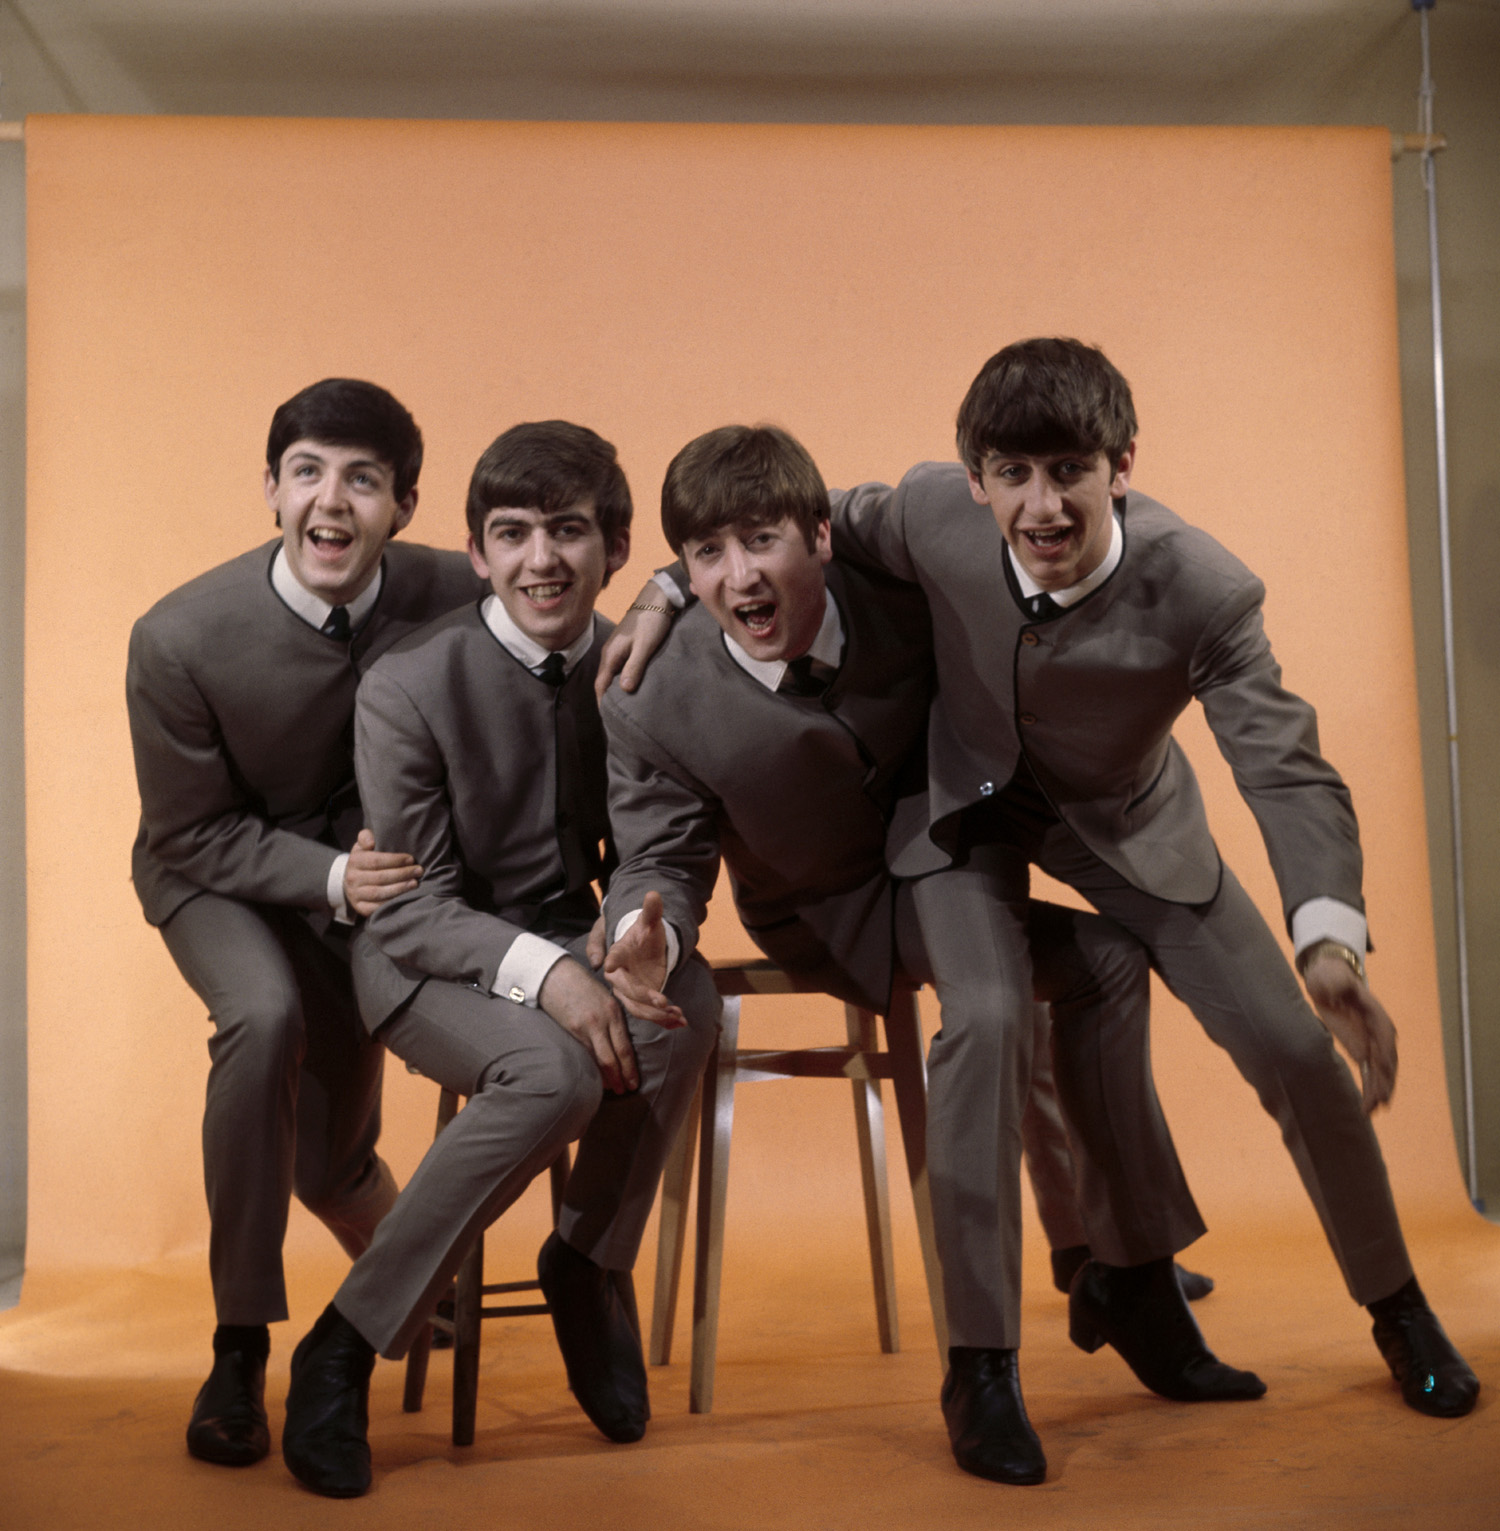 The Beatles Photo 181 Of 239 Pics Wallpaper